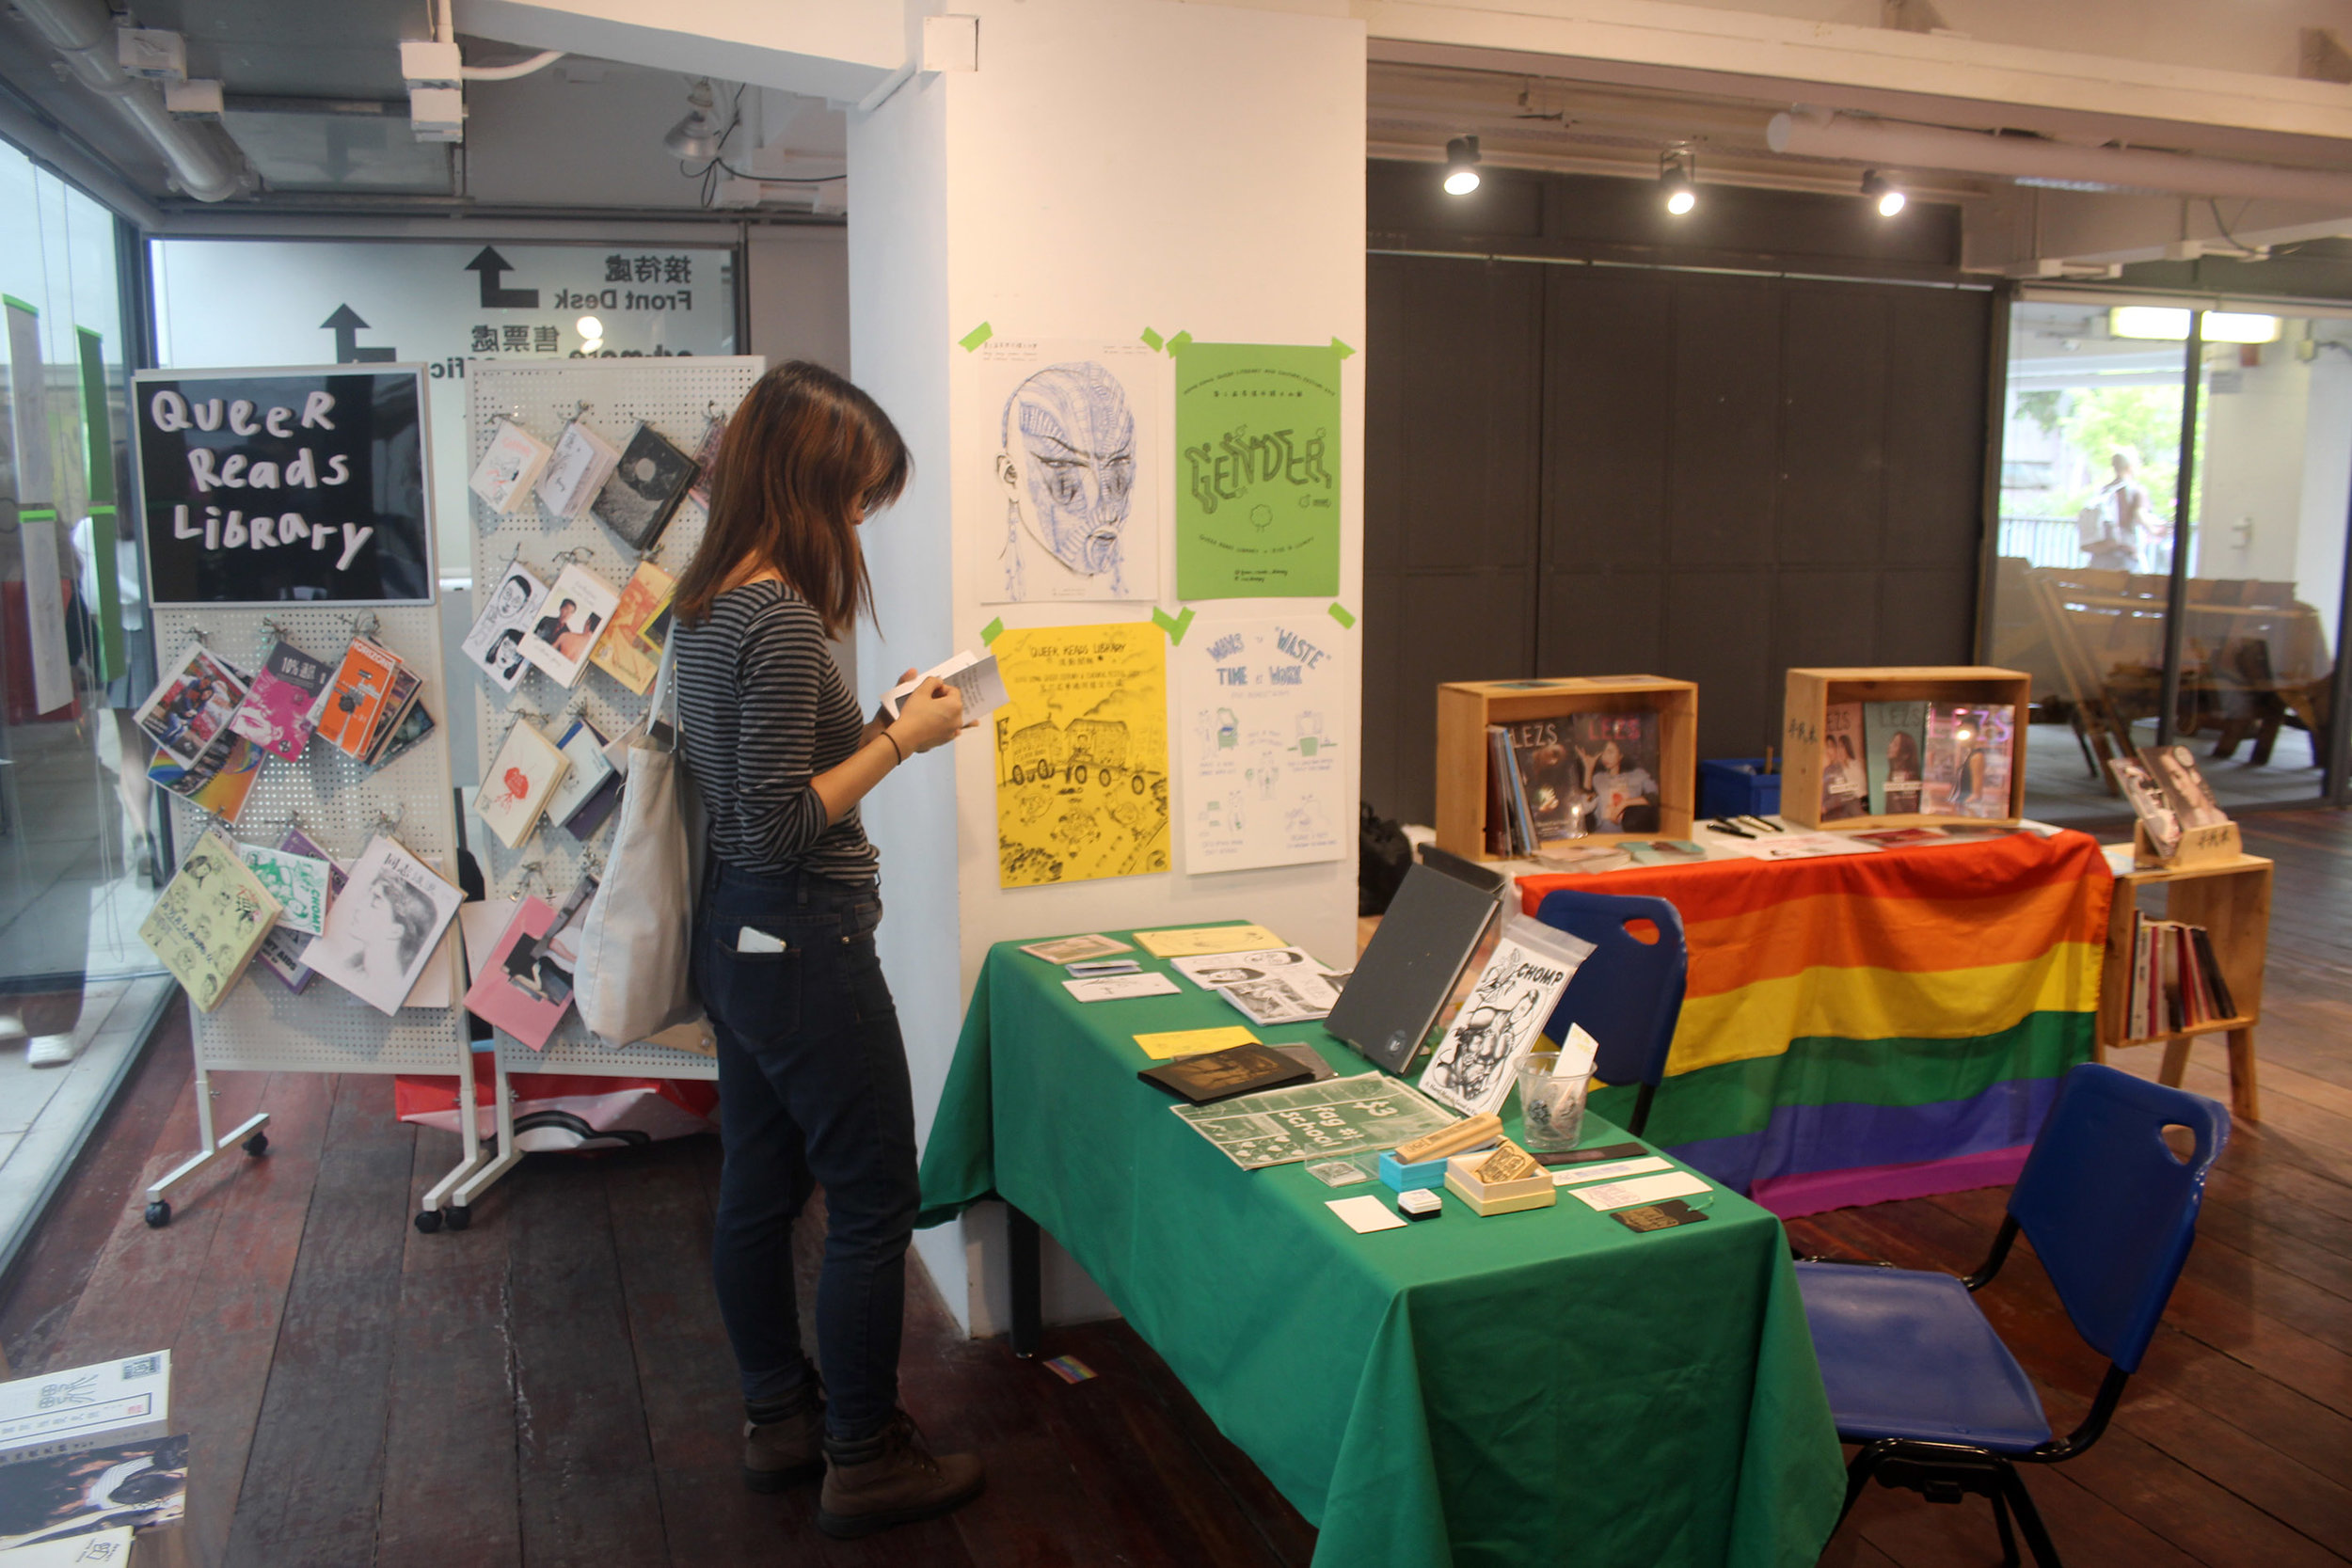 31 / 3 / 2019  Feeling so grateful for the organizers of Hong Kong Queer Literary and Culture Festival for a great weekend! QRL hosted some conversations, collaborated with artists on festival posters and had a lovely time meeting lots of new friends.